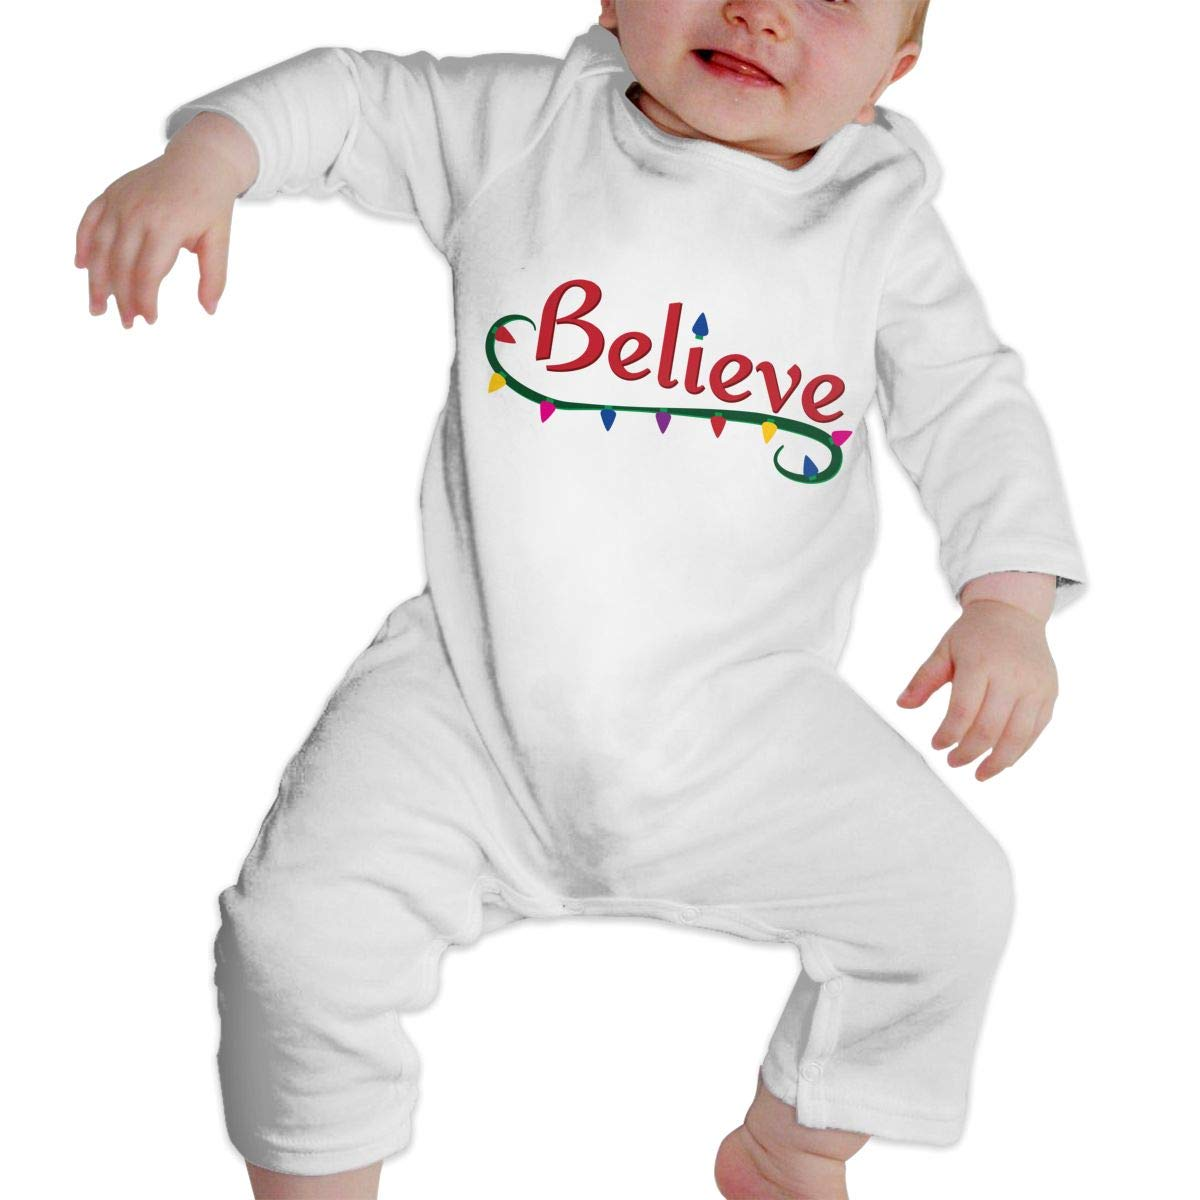 KAYERDELLE Christmas Santa Clause Believe Long Sleeve Unisex Baby Bodysuits for 6-24 Months Boys /& Girls